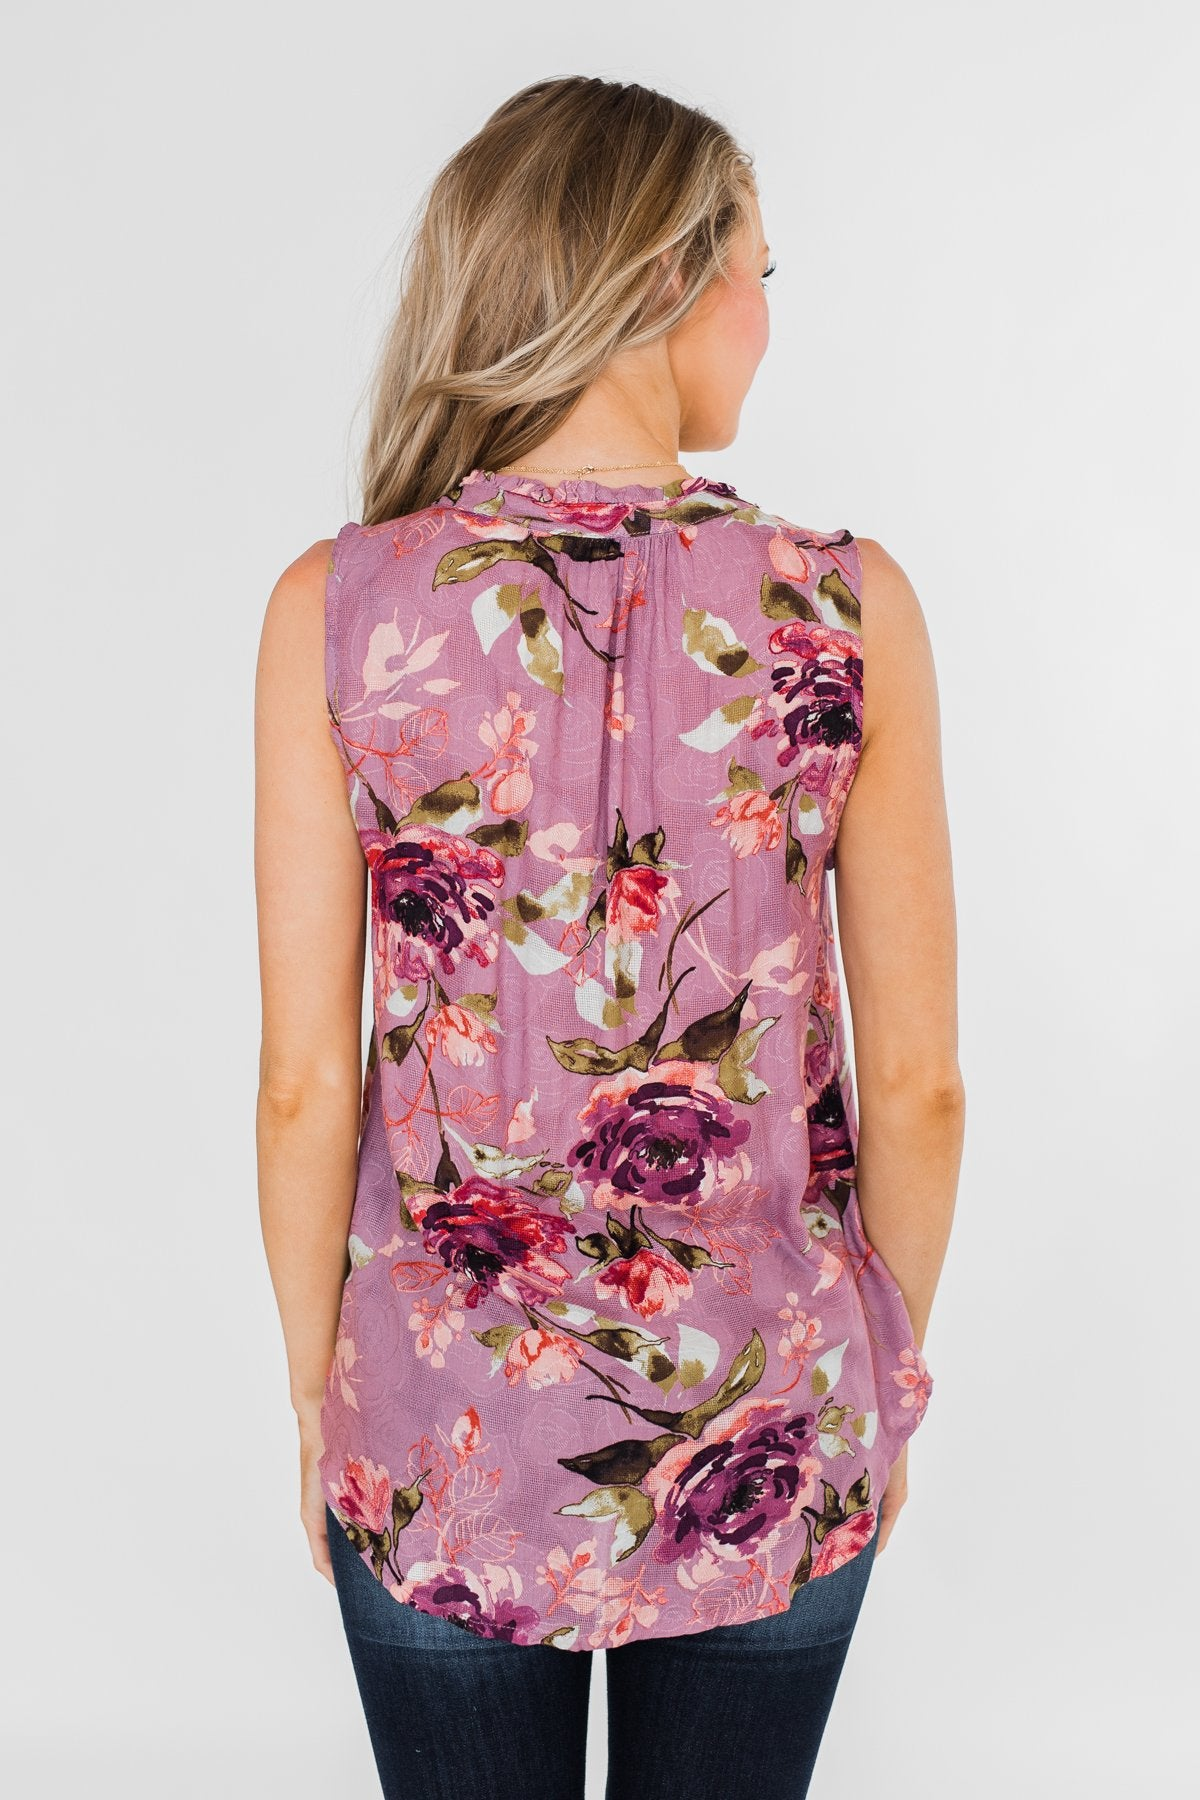 I'll Be There Floral Neck Tie Tank Top- Orchid